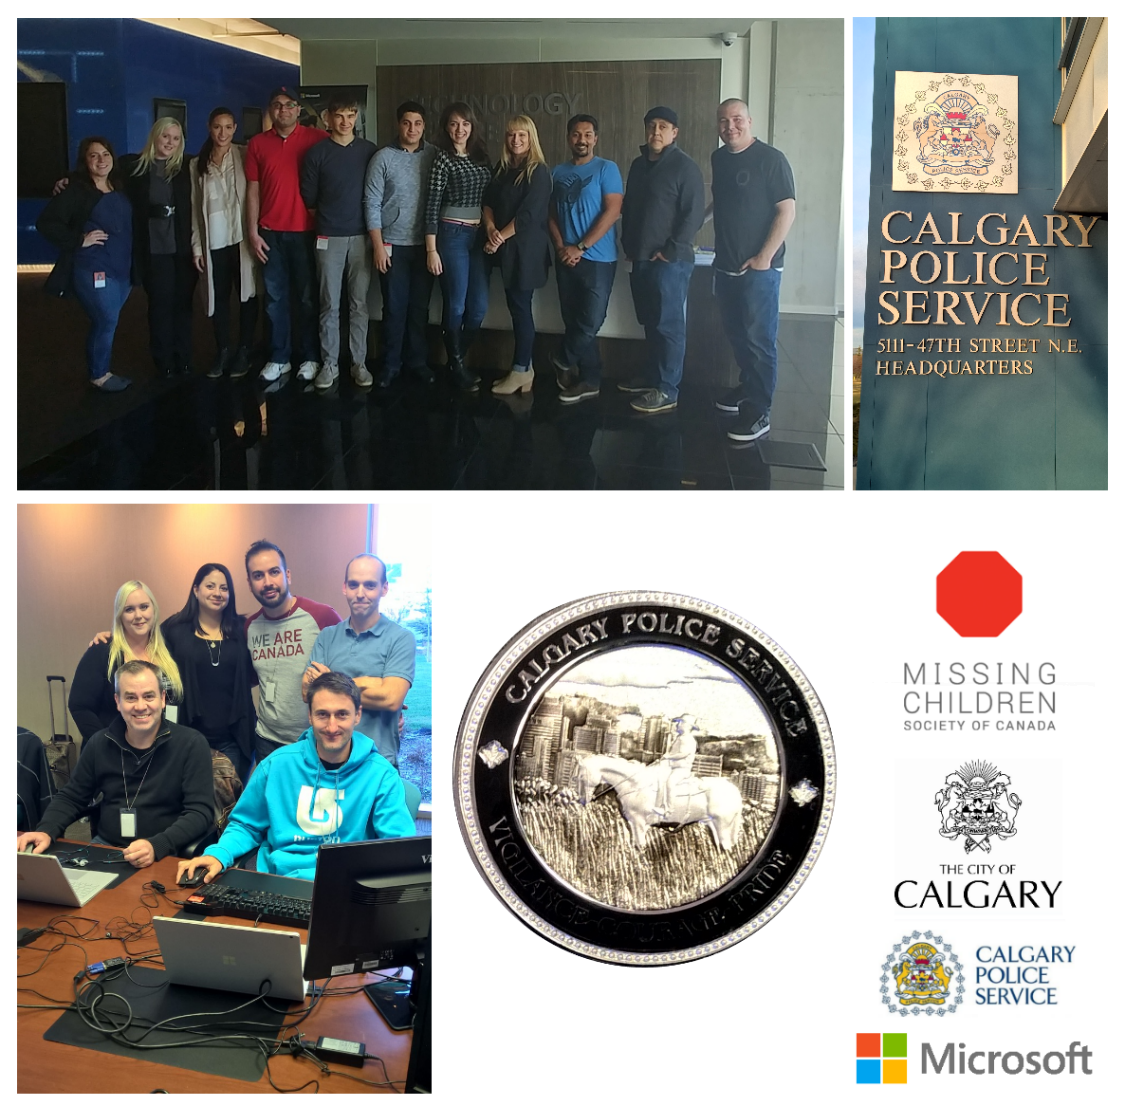 Photo montage: team members; sign, badge, and logo of Calgary Police Service; logos of MCSC, City of Calgary, and Microsoft